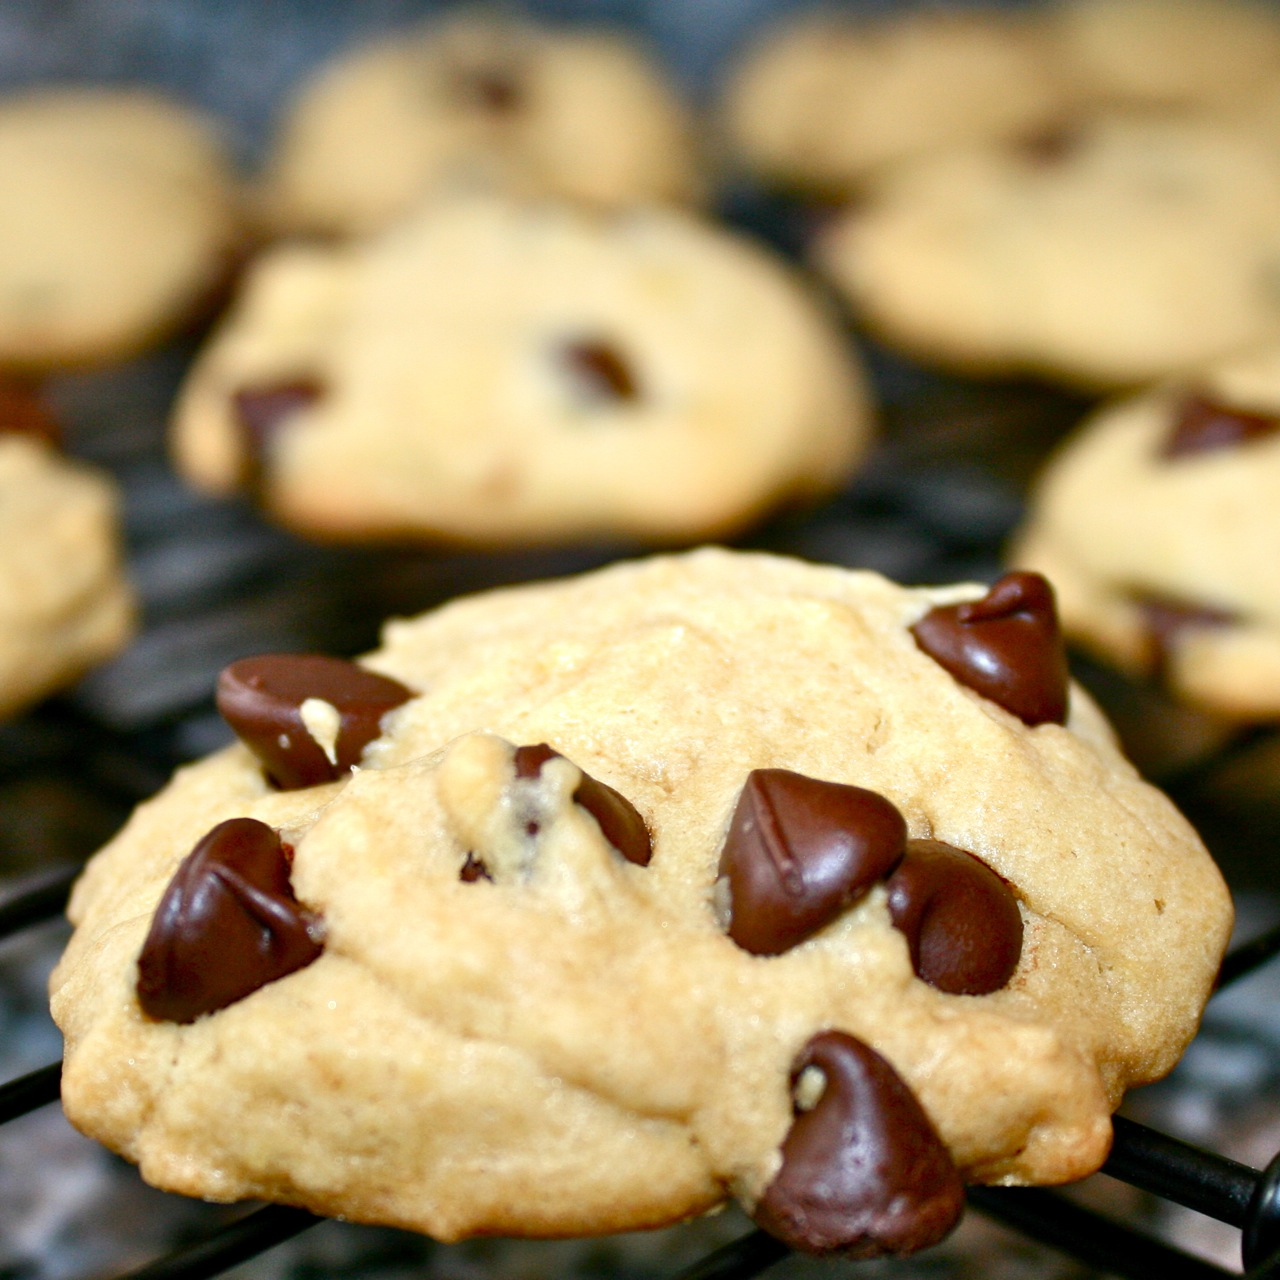 See Brooke Cook: Thick and Chewy Chocolate Chip Cookies